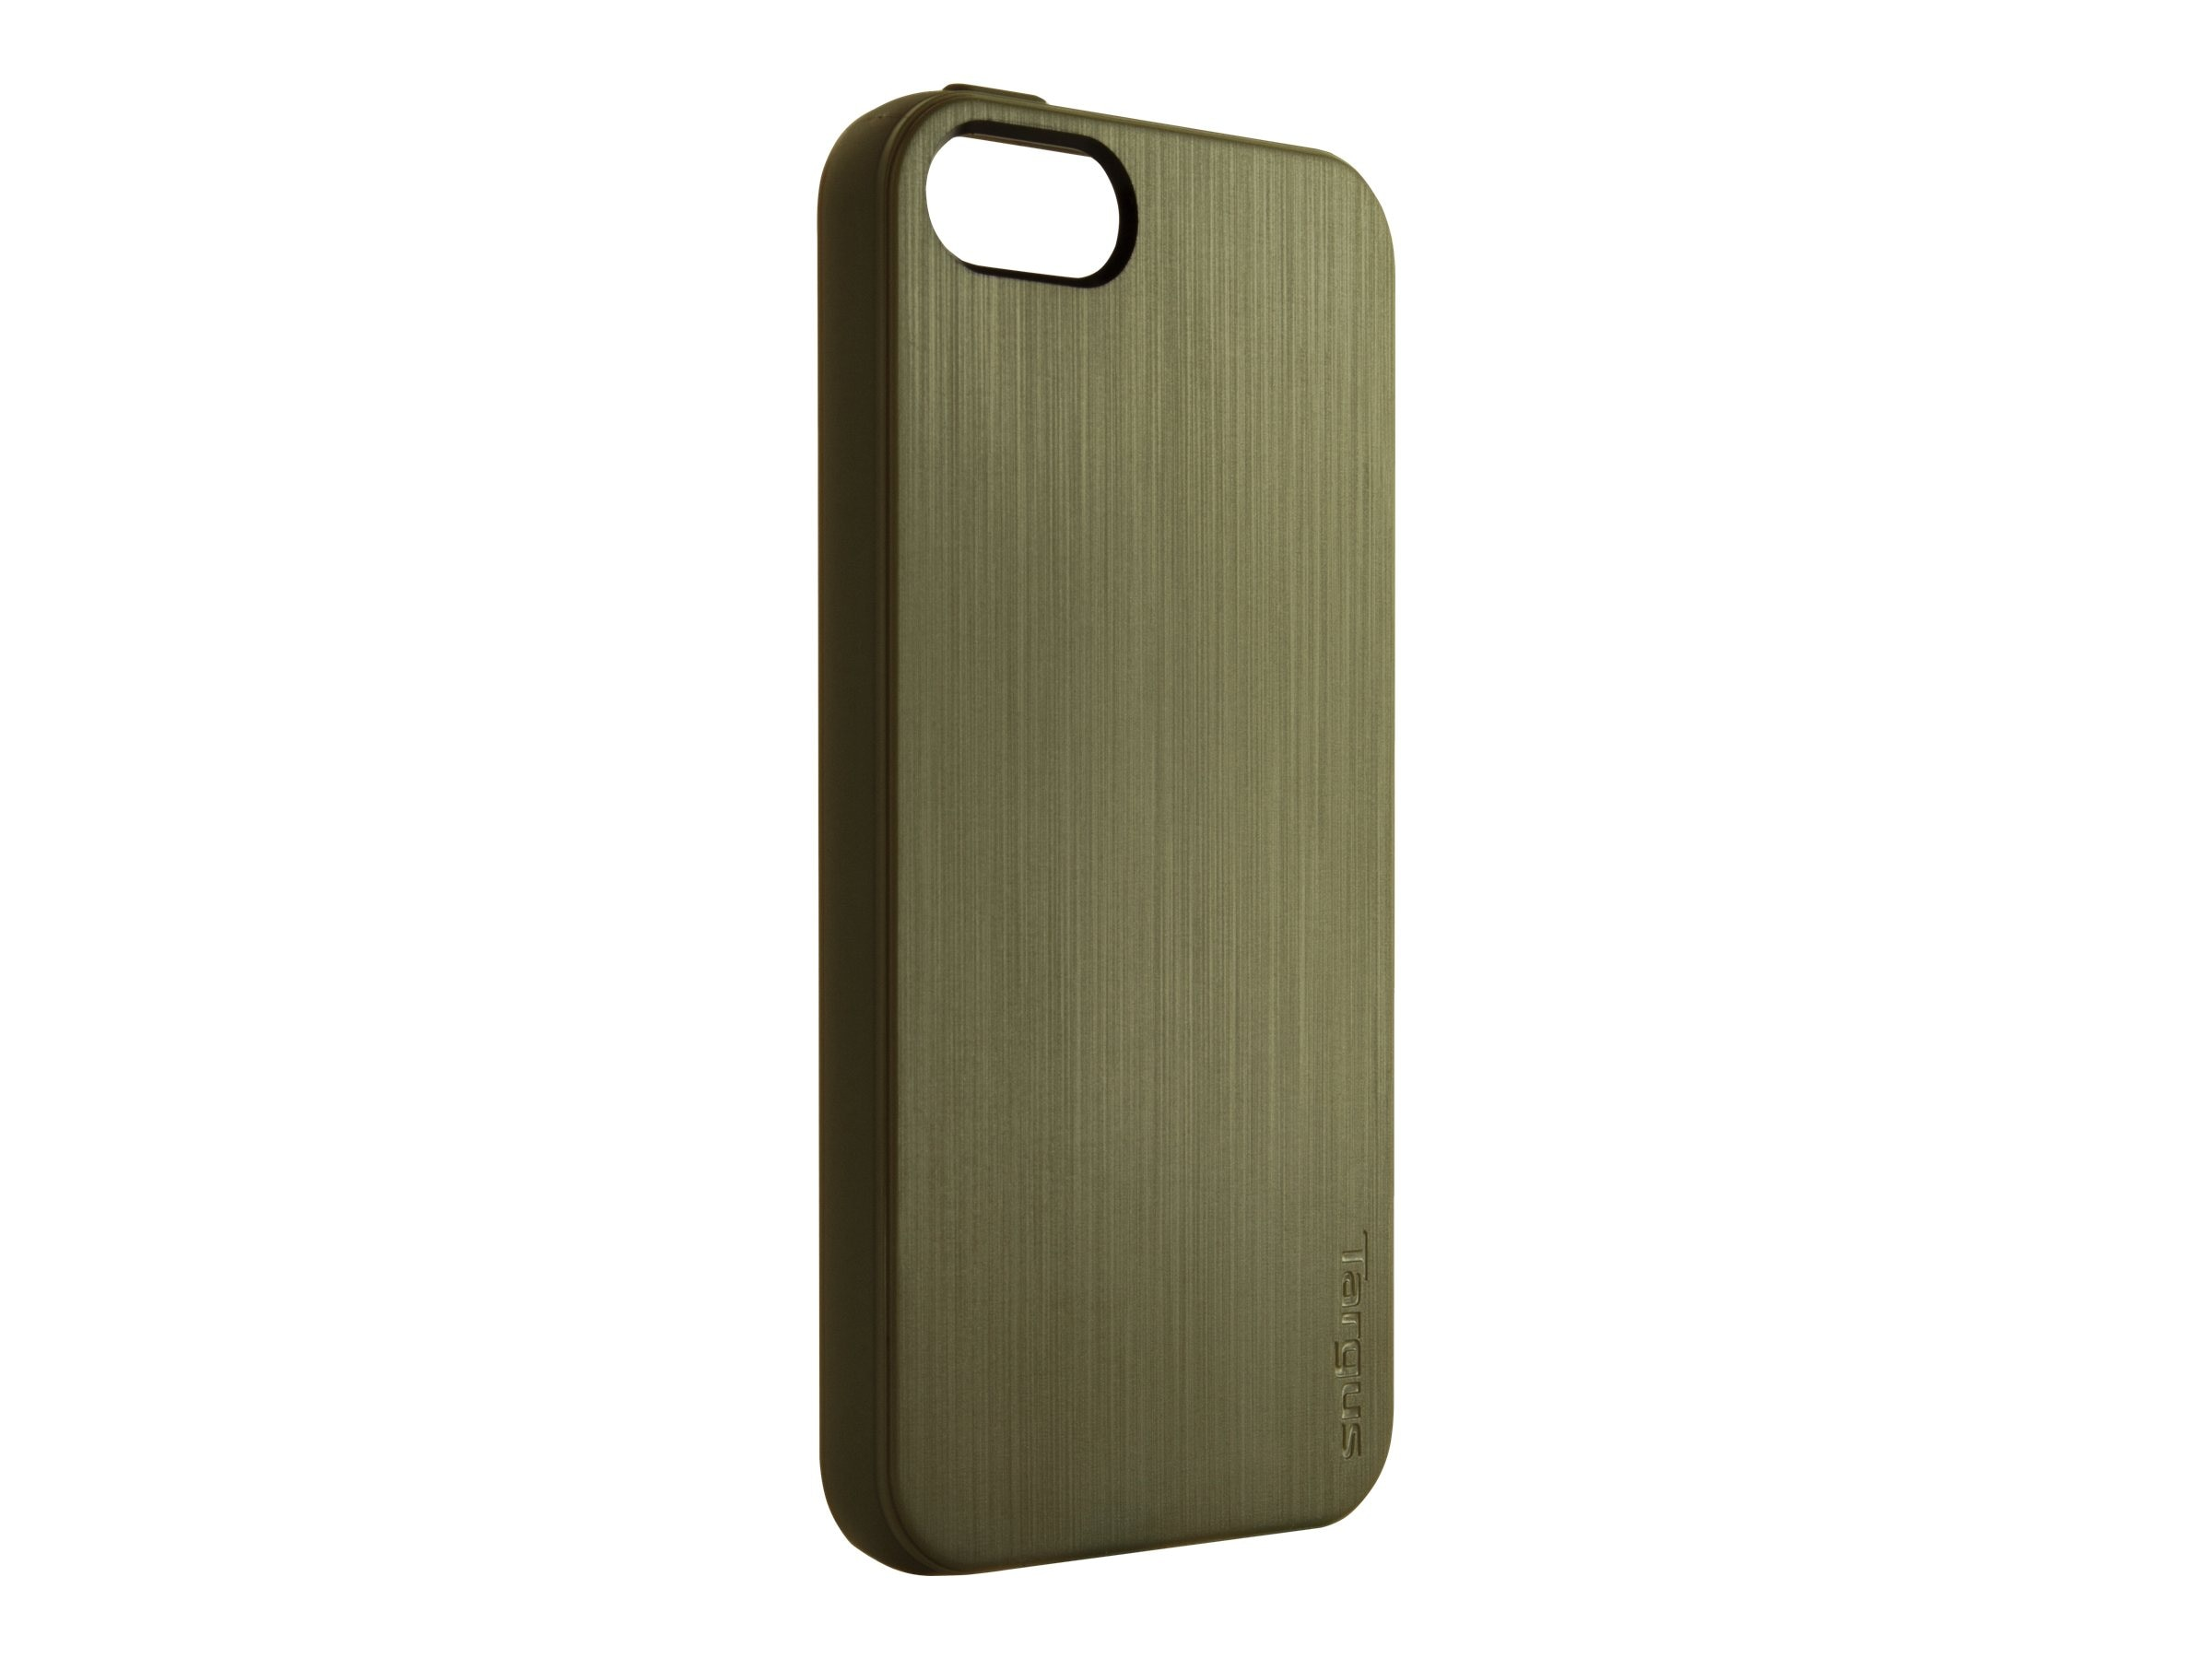 Targus Slim-Fit Back Cover for iPhone 5, Green, THD03105US